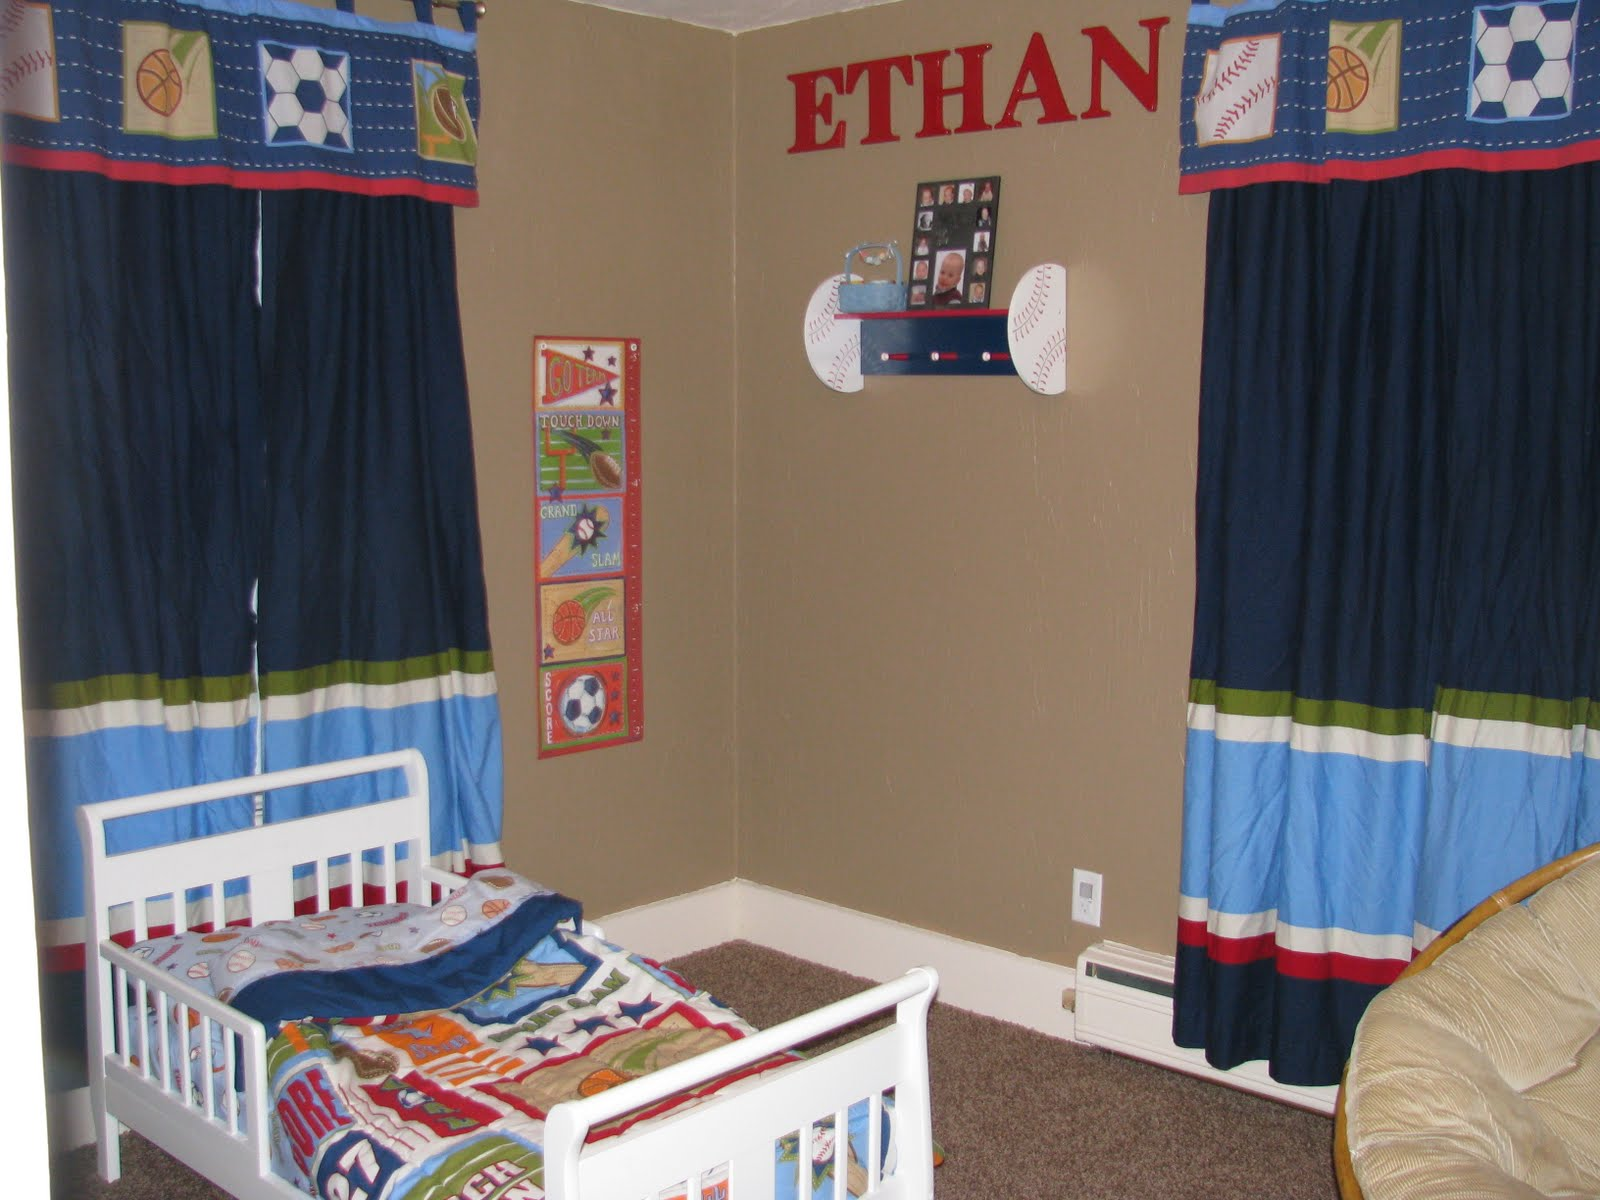 Boys Sports Bedroom. boys sports bedroom and here s ethan new toddler we chose a  theme Boys Sports Bedroom Wallpress 1080p HD Desktop